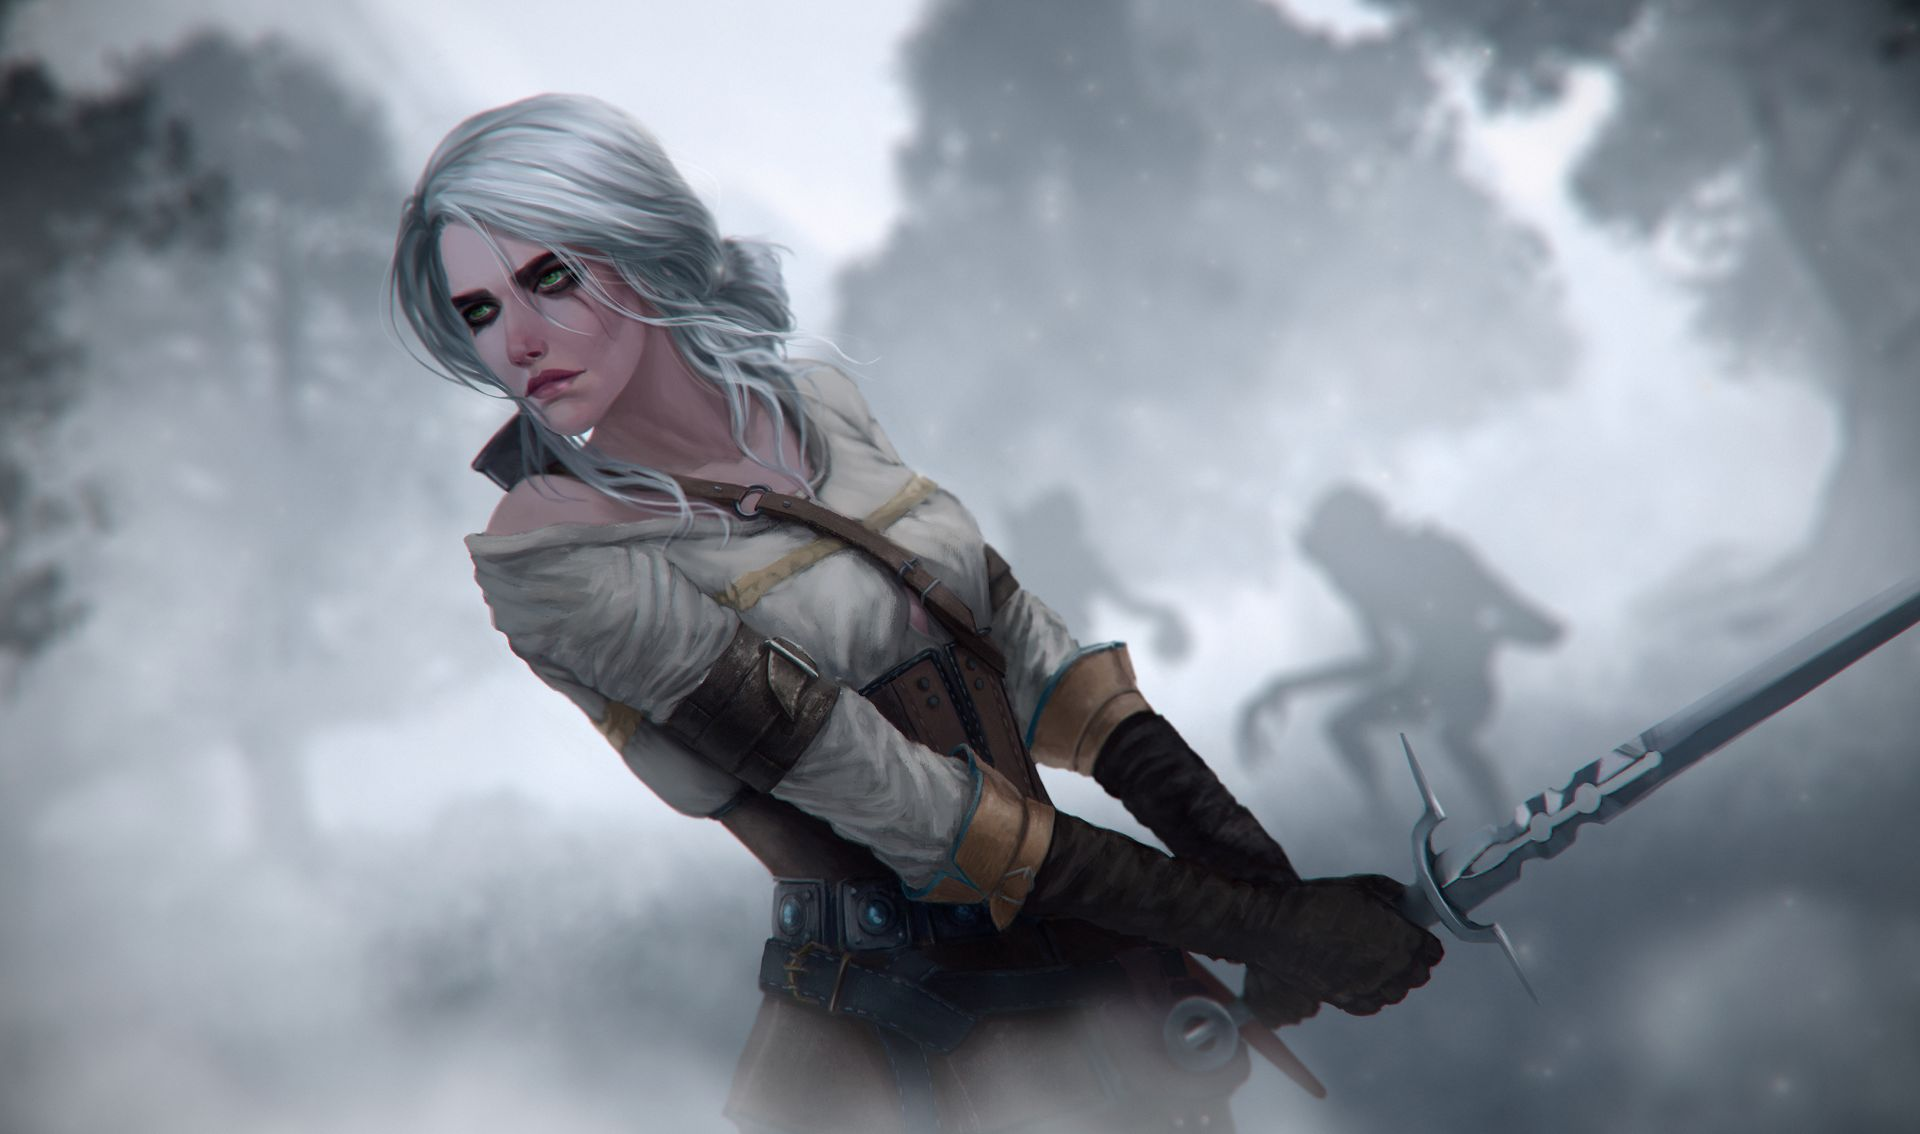 35 Witcher 3 Ciri Wallpapers   WallpaperBoat 1920x1134